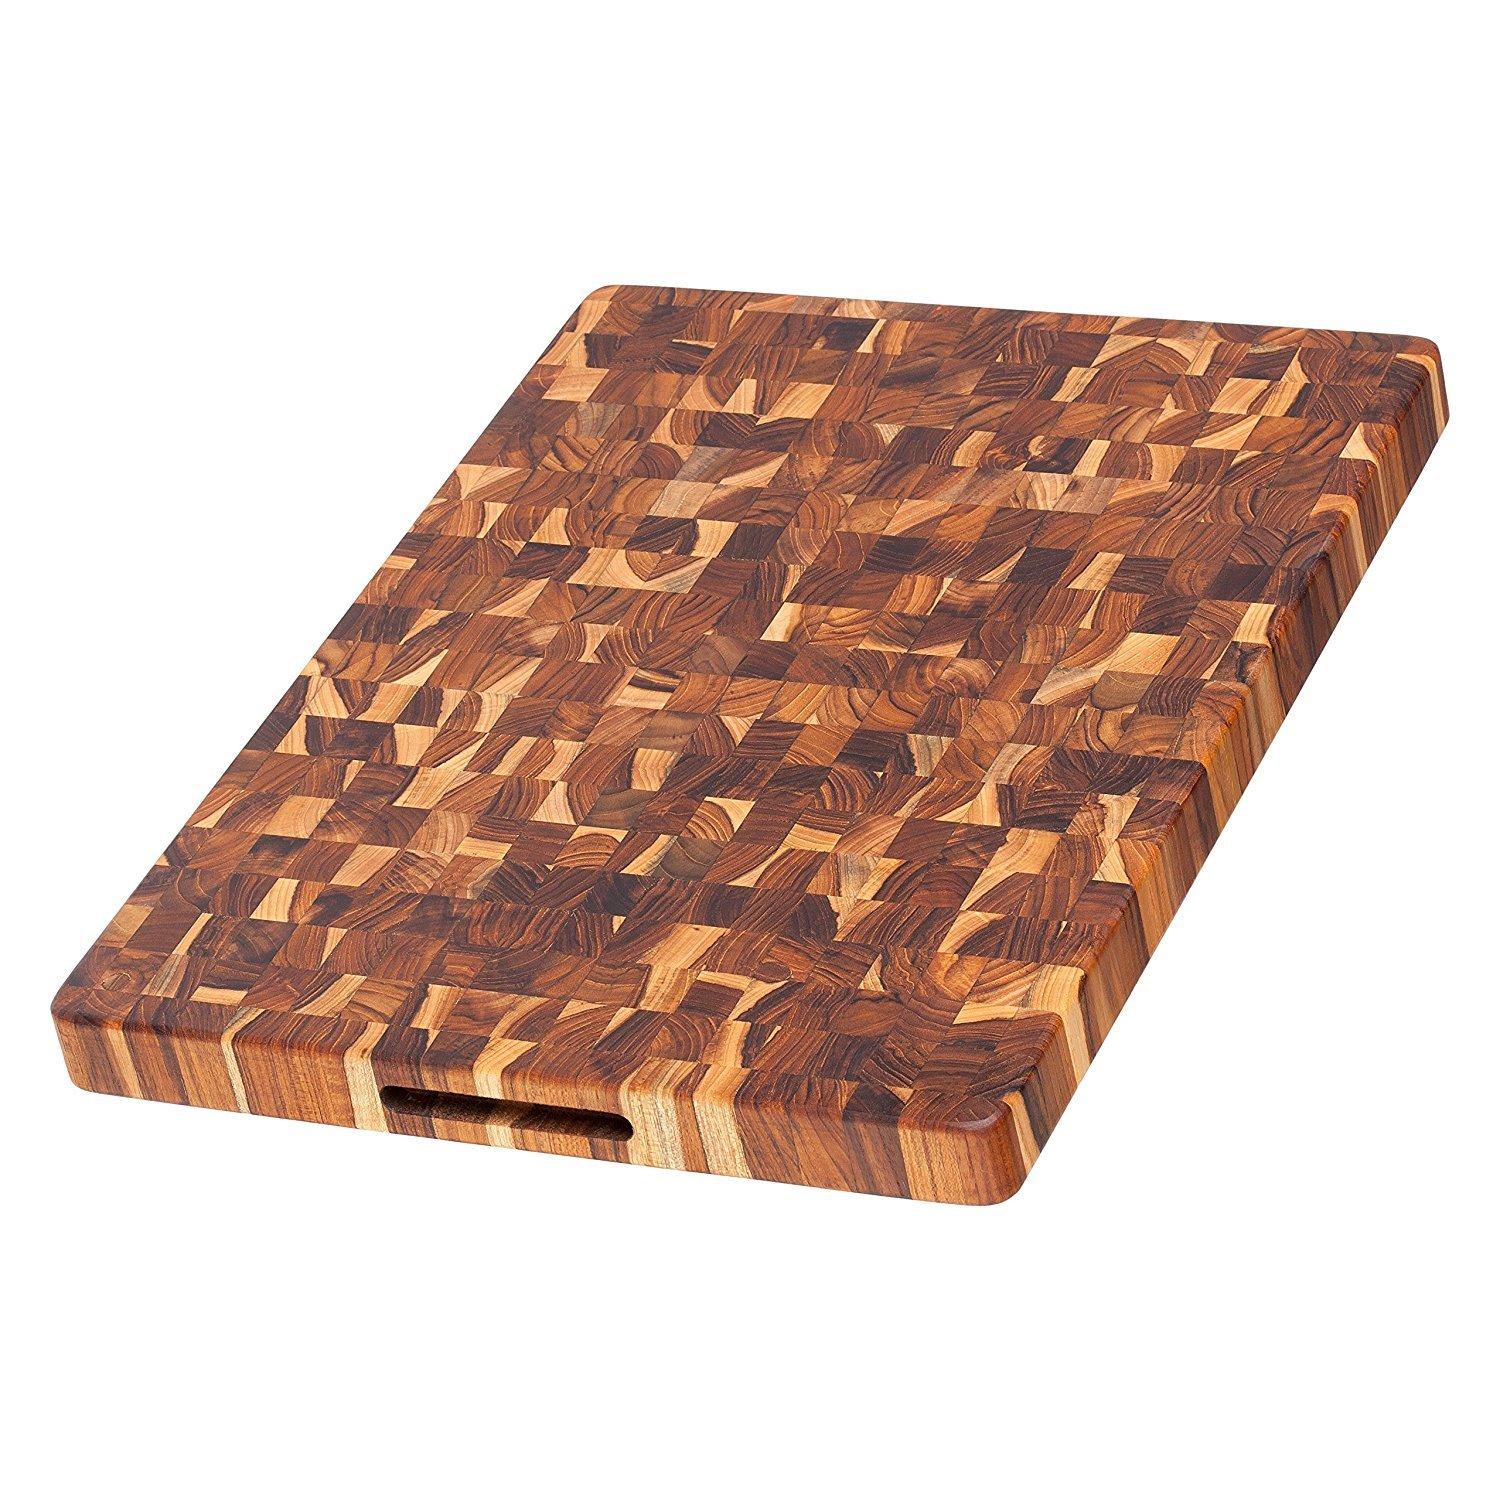 Teak Cutting Board - Rectangle Butcher Block With Hand Grip ( 20 x 15 x 1.5 in.) - By Teakhaus by Teakhaus